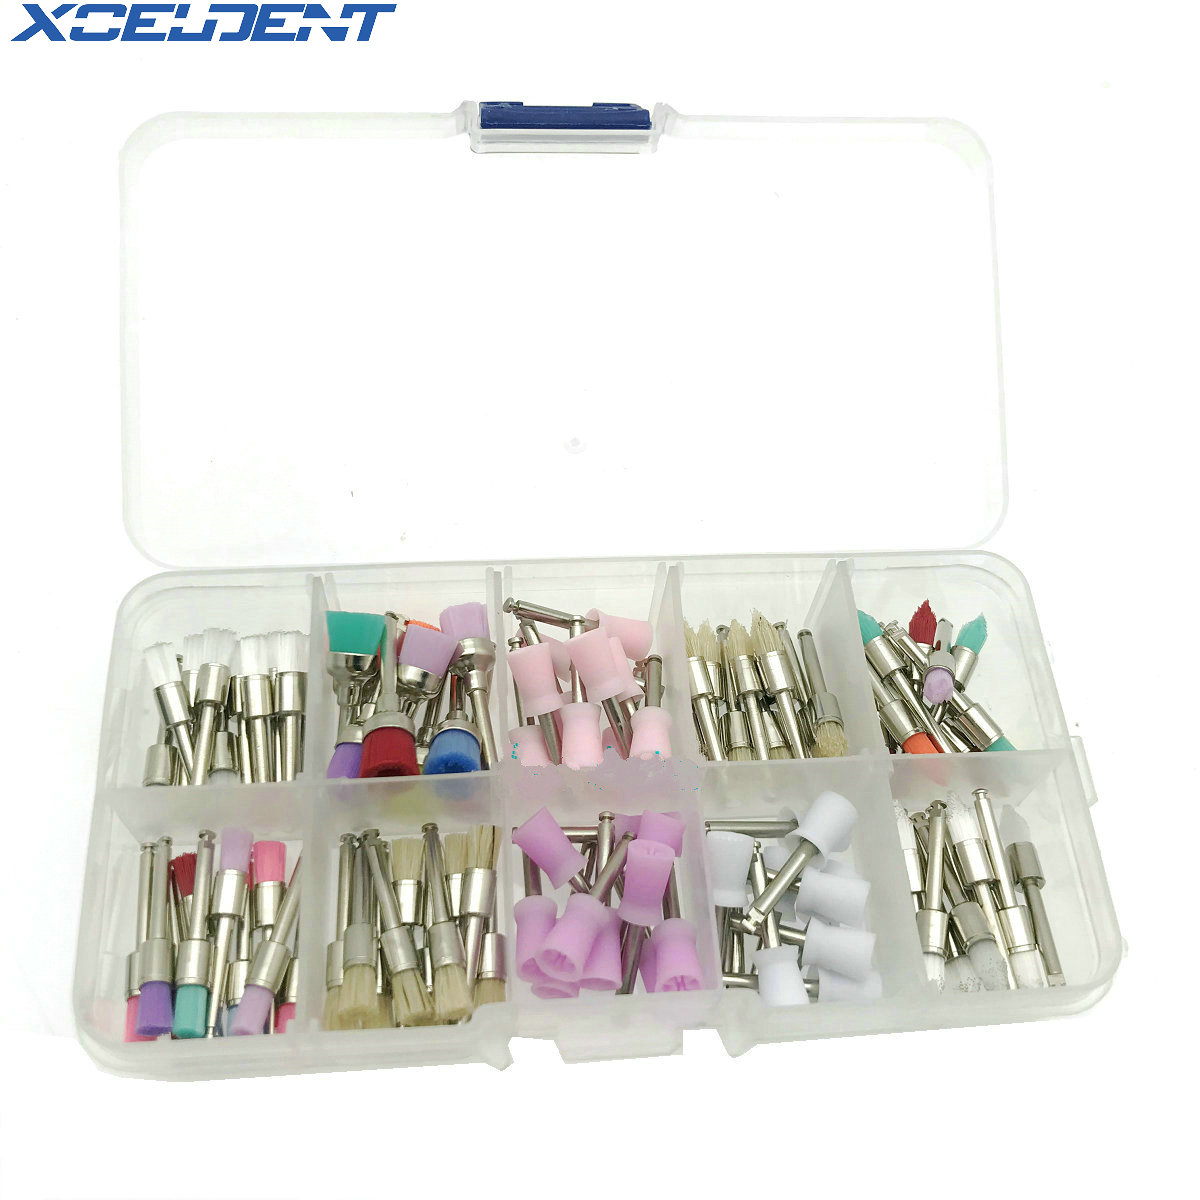 10 Mixed Types Dental Disposable Polishing Cup Dentistry Prophy Brush 100 PCS/Set Dentist Tool Lab Material